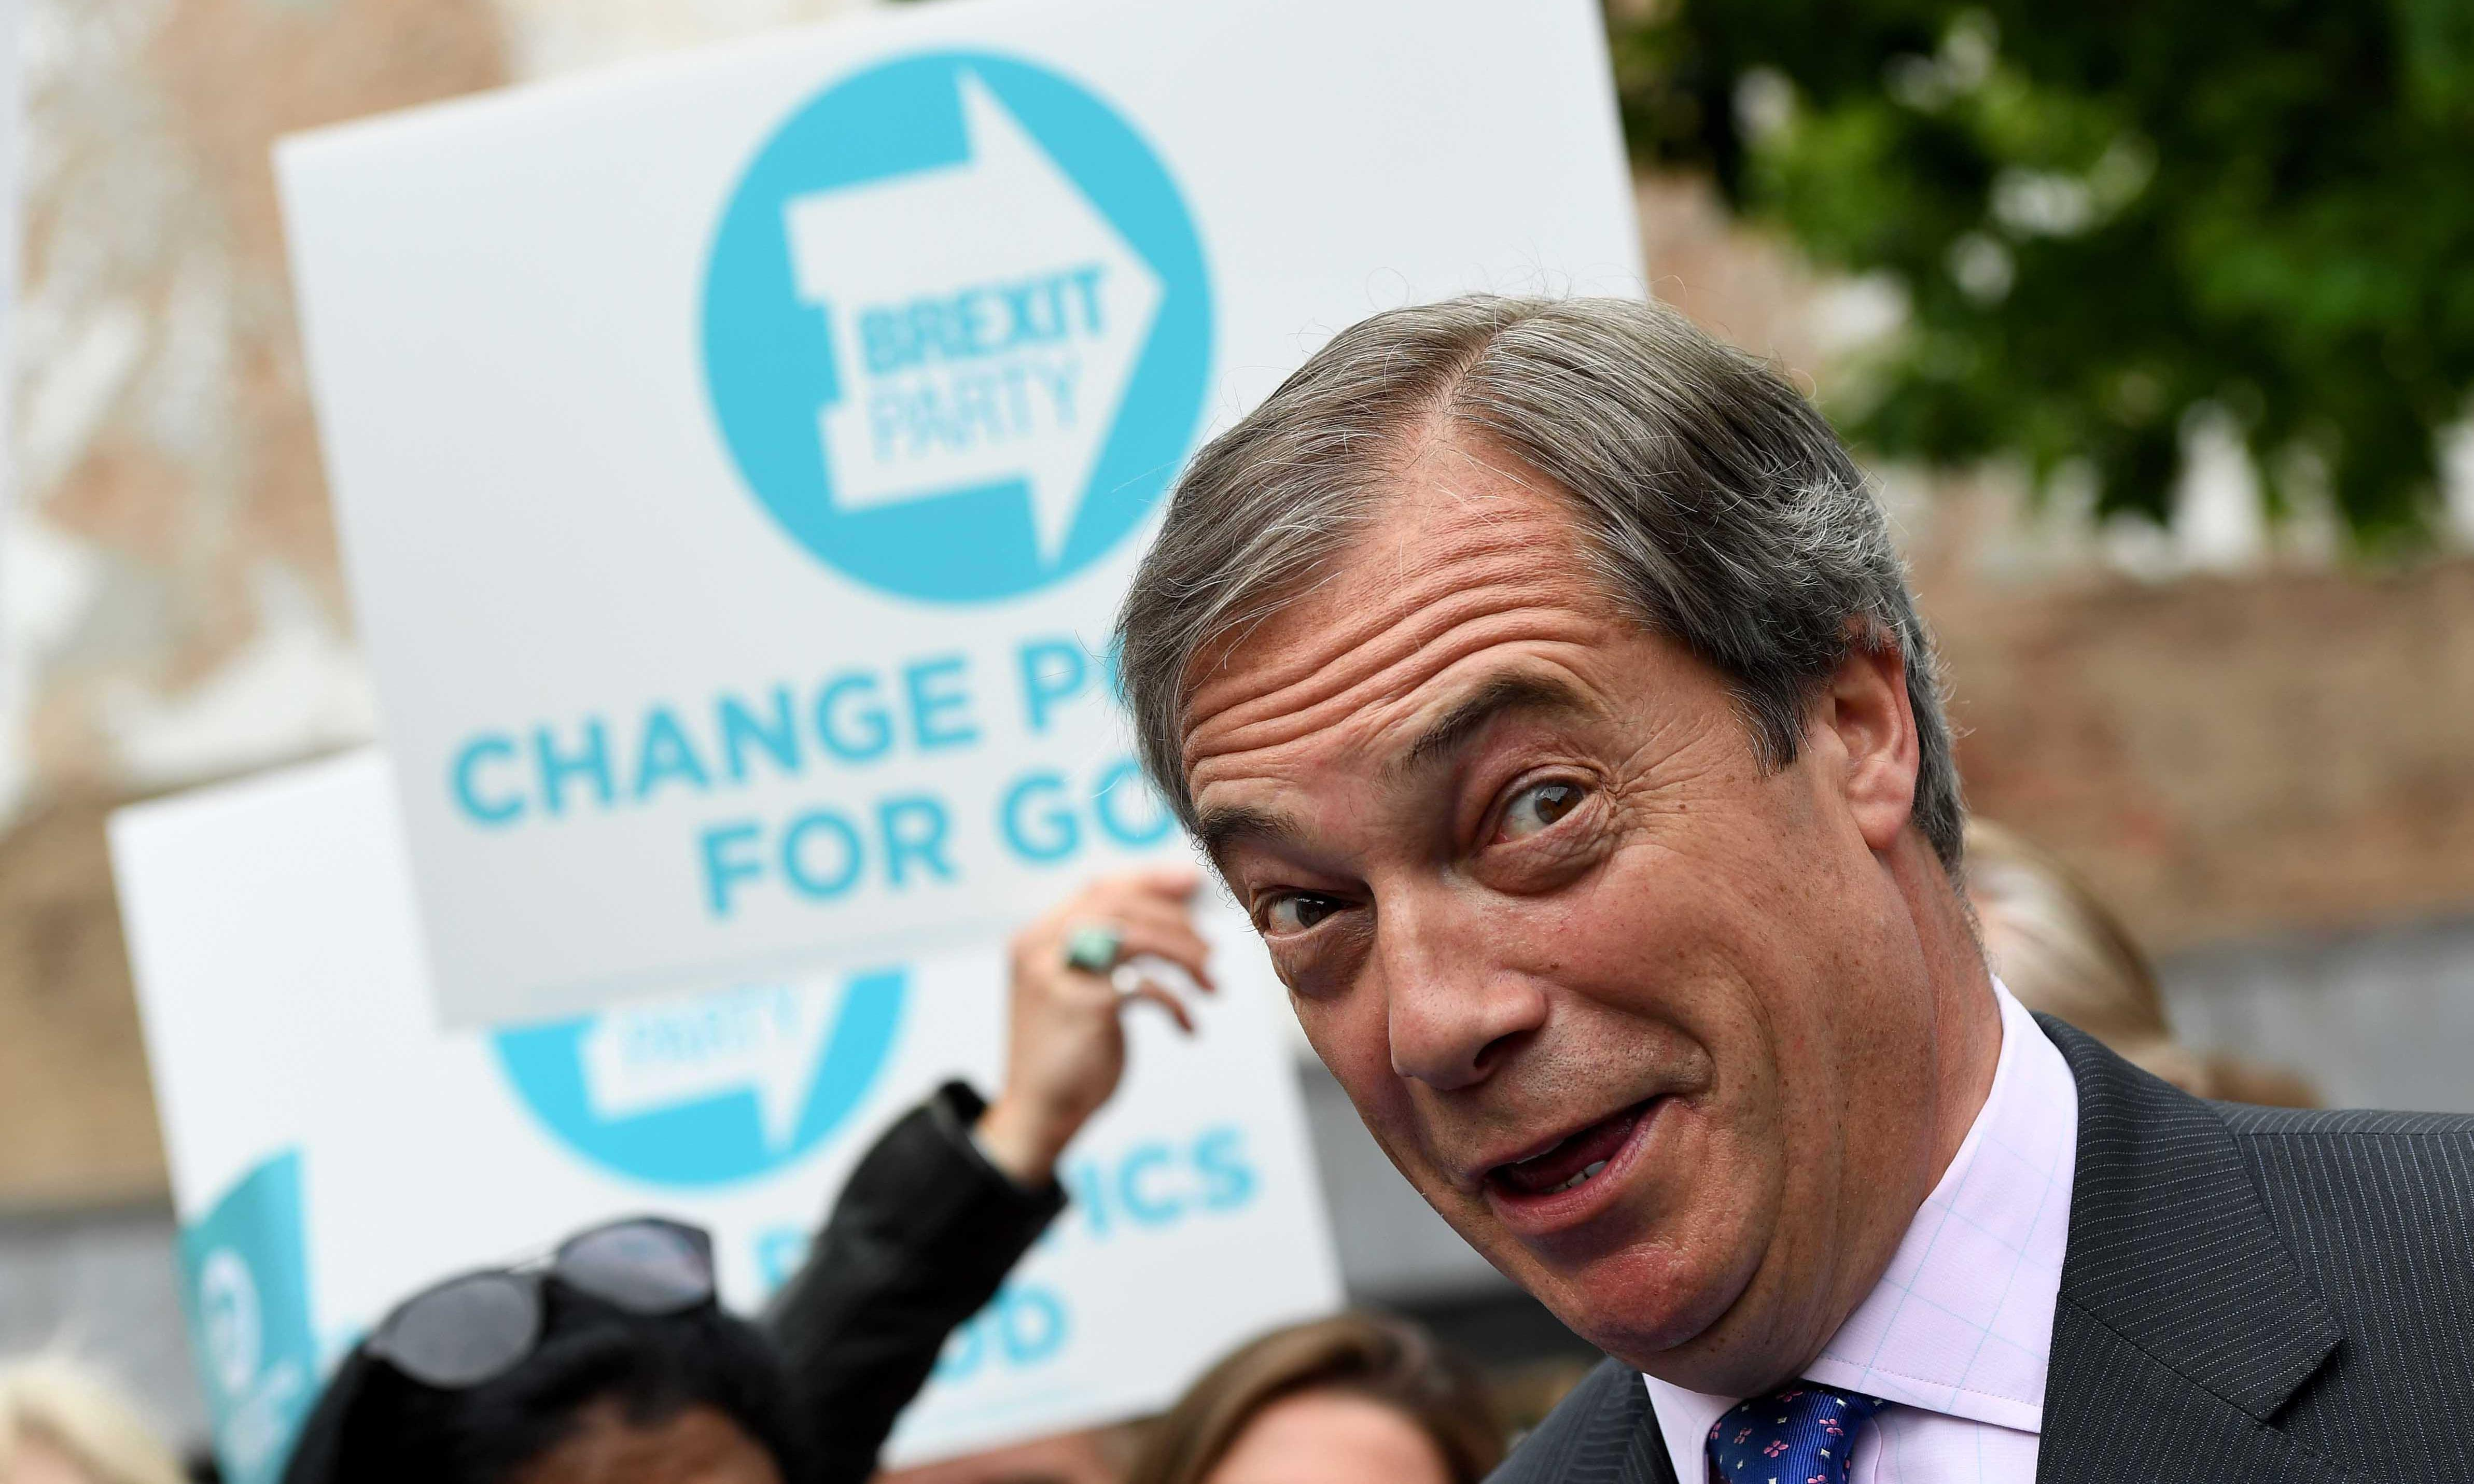 Pro- and anti-Brexit parties neck and neck in EU election, says poll